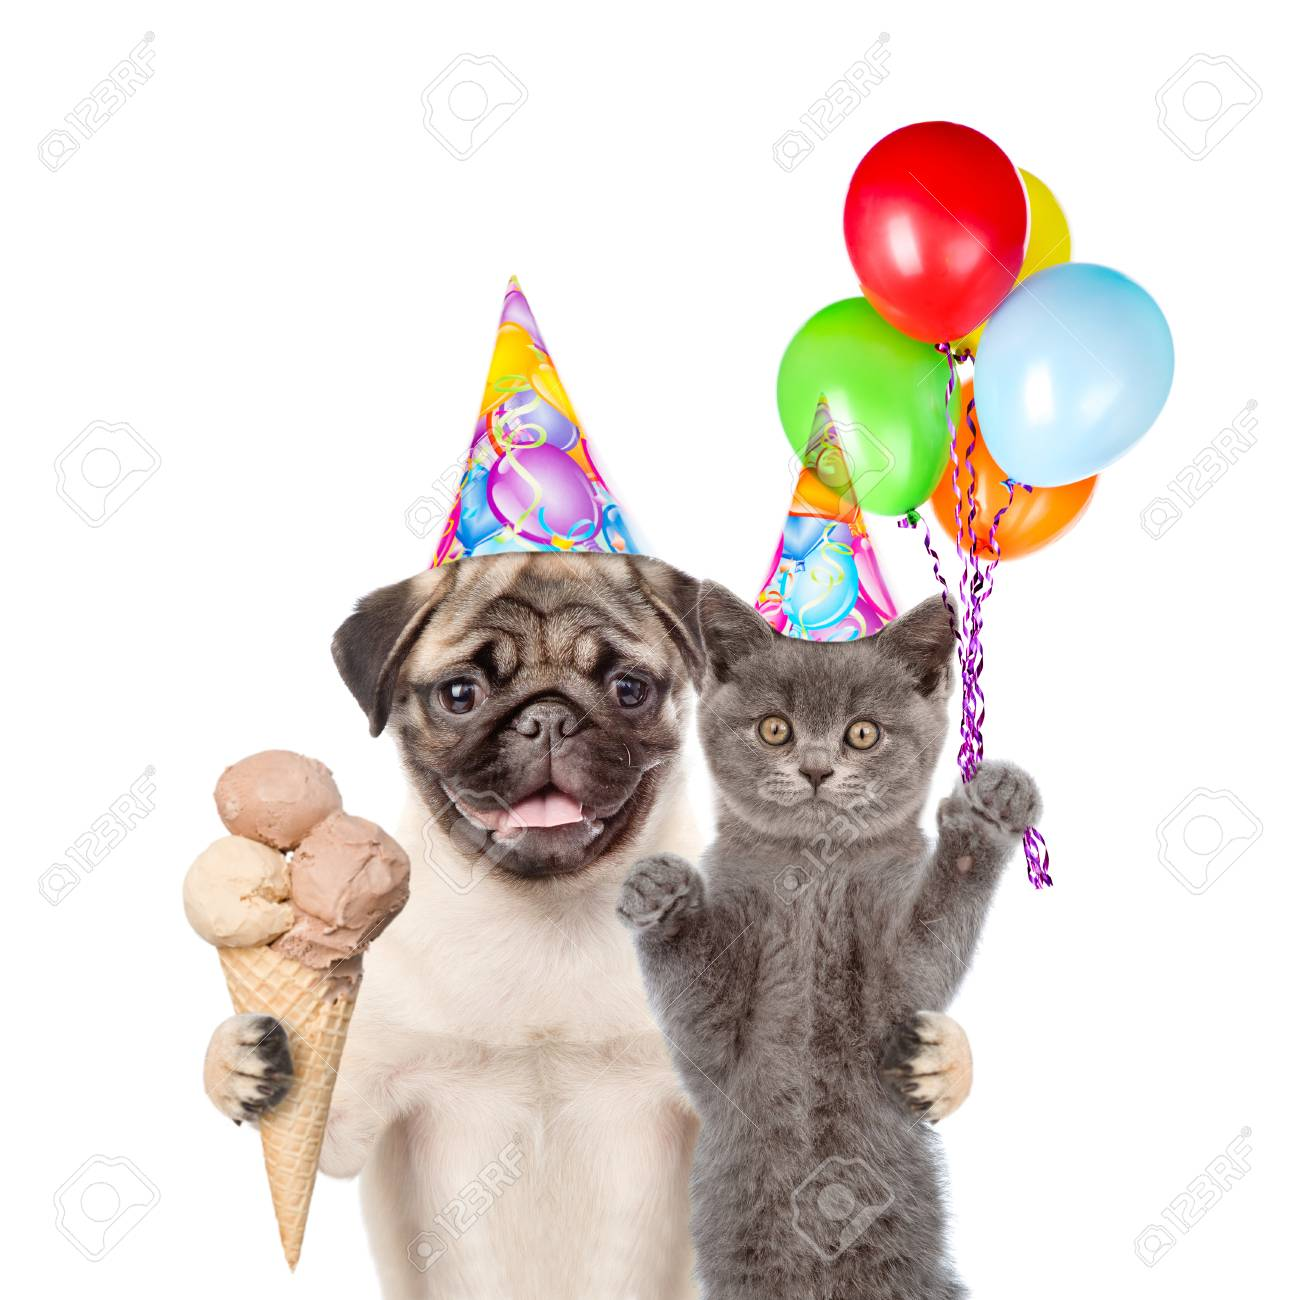 Cat And Dog In Birthday Hats Holding Balloons Ice Cream Isolated On White Background